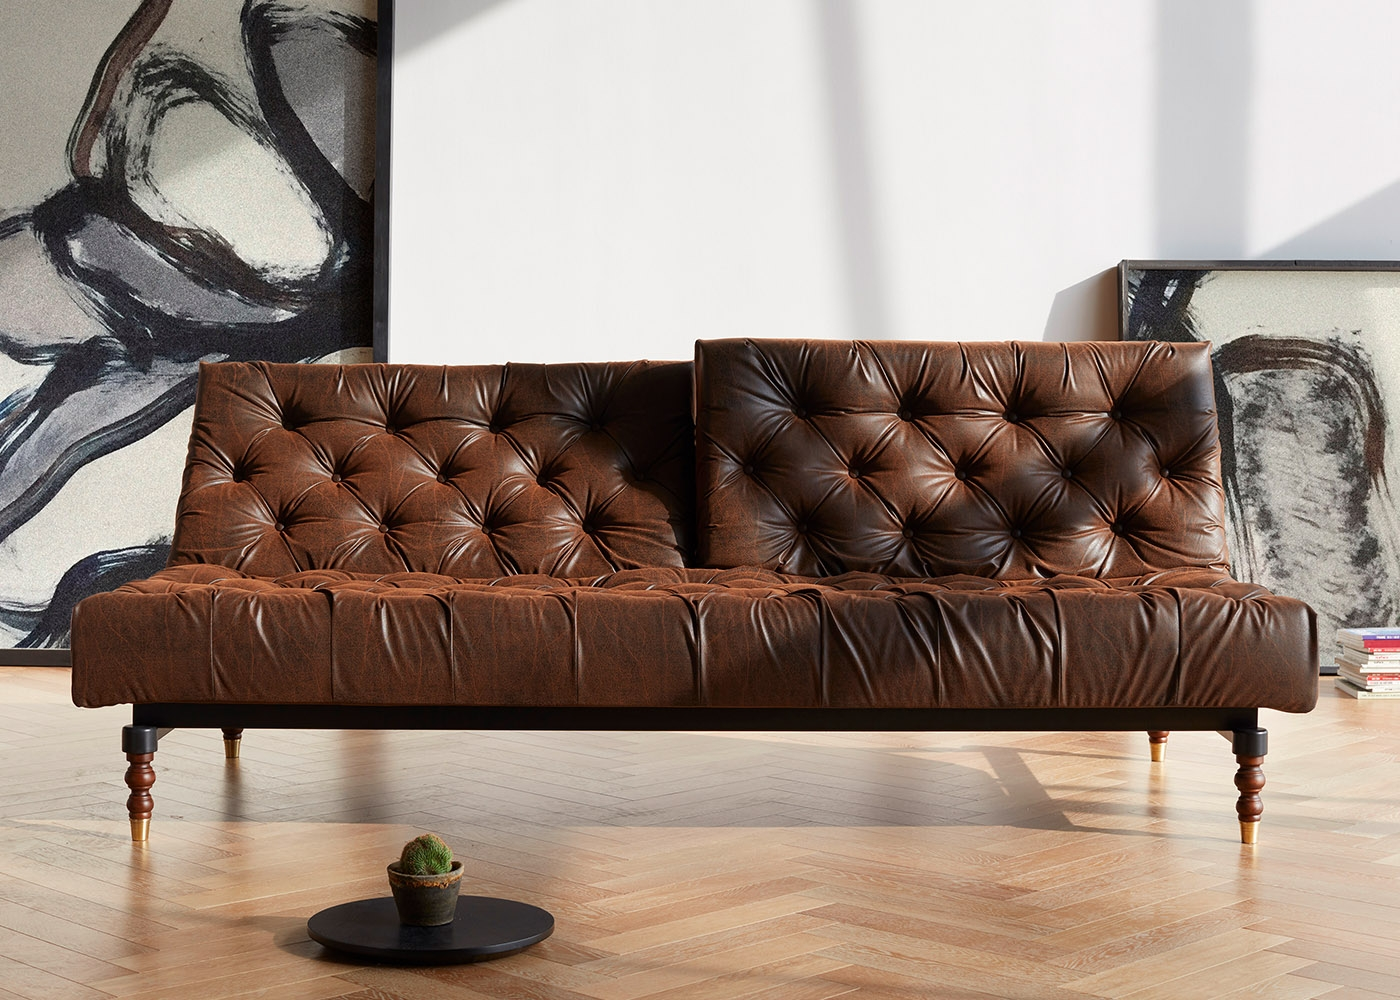 Canapé Vintage En Simili Cuir Marron Chesterfield Chez Ksl Living